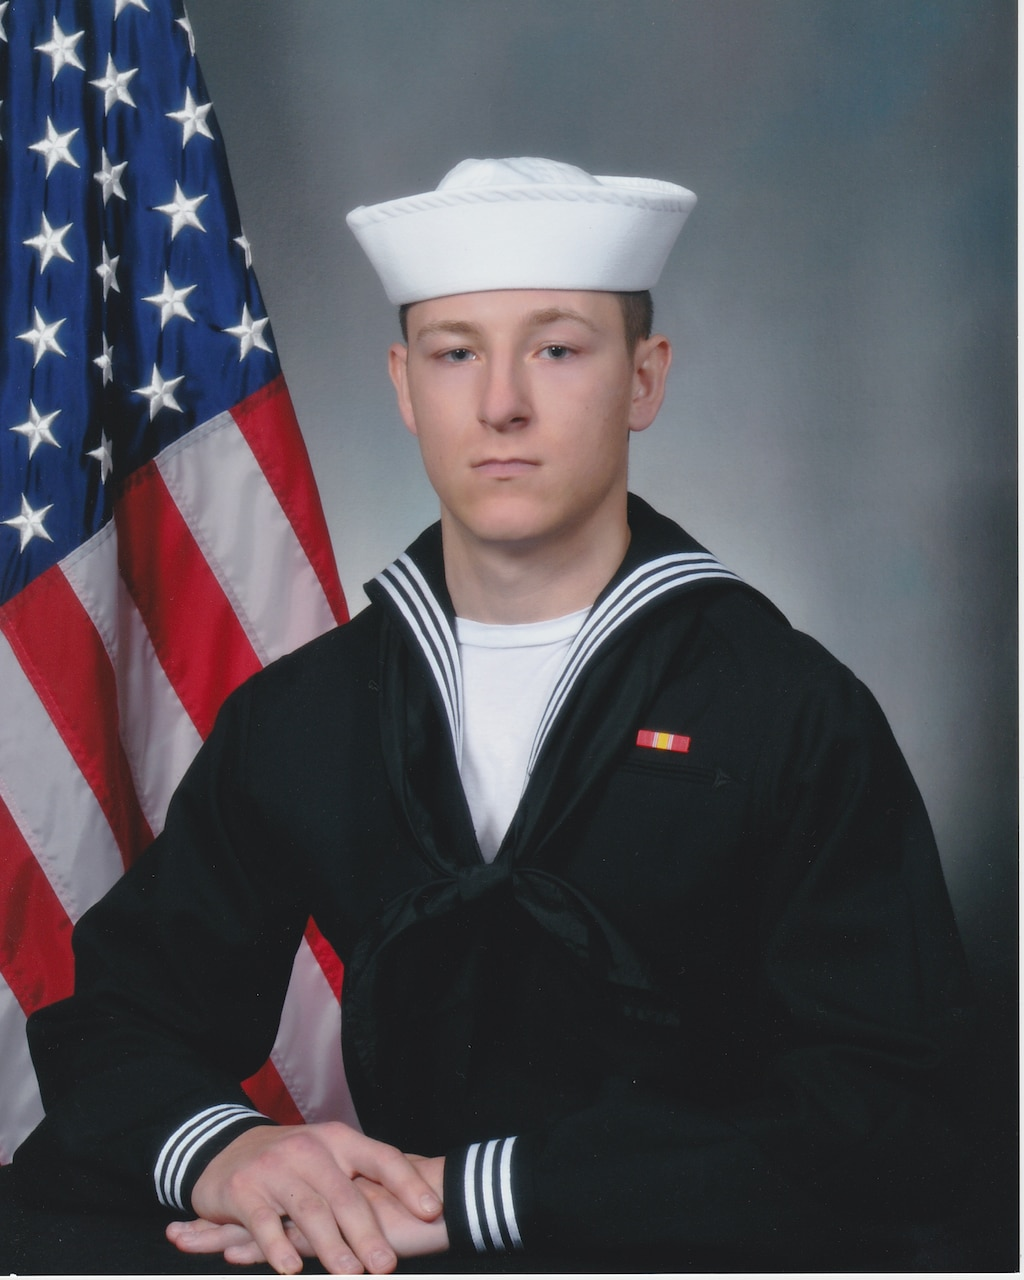 Electronics Technician 3rd Class Kenneth Aaron Smith, 22, from Cherry Hill, New Jersey